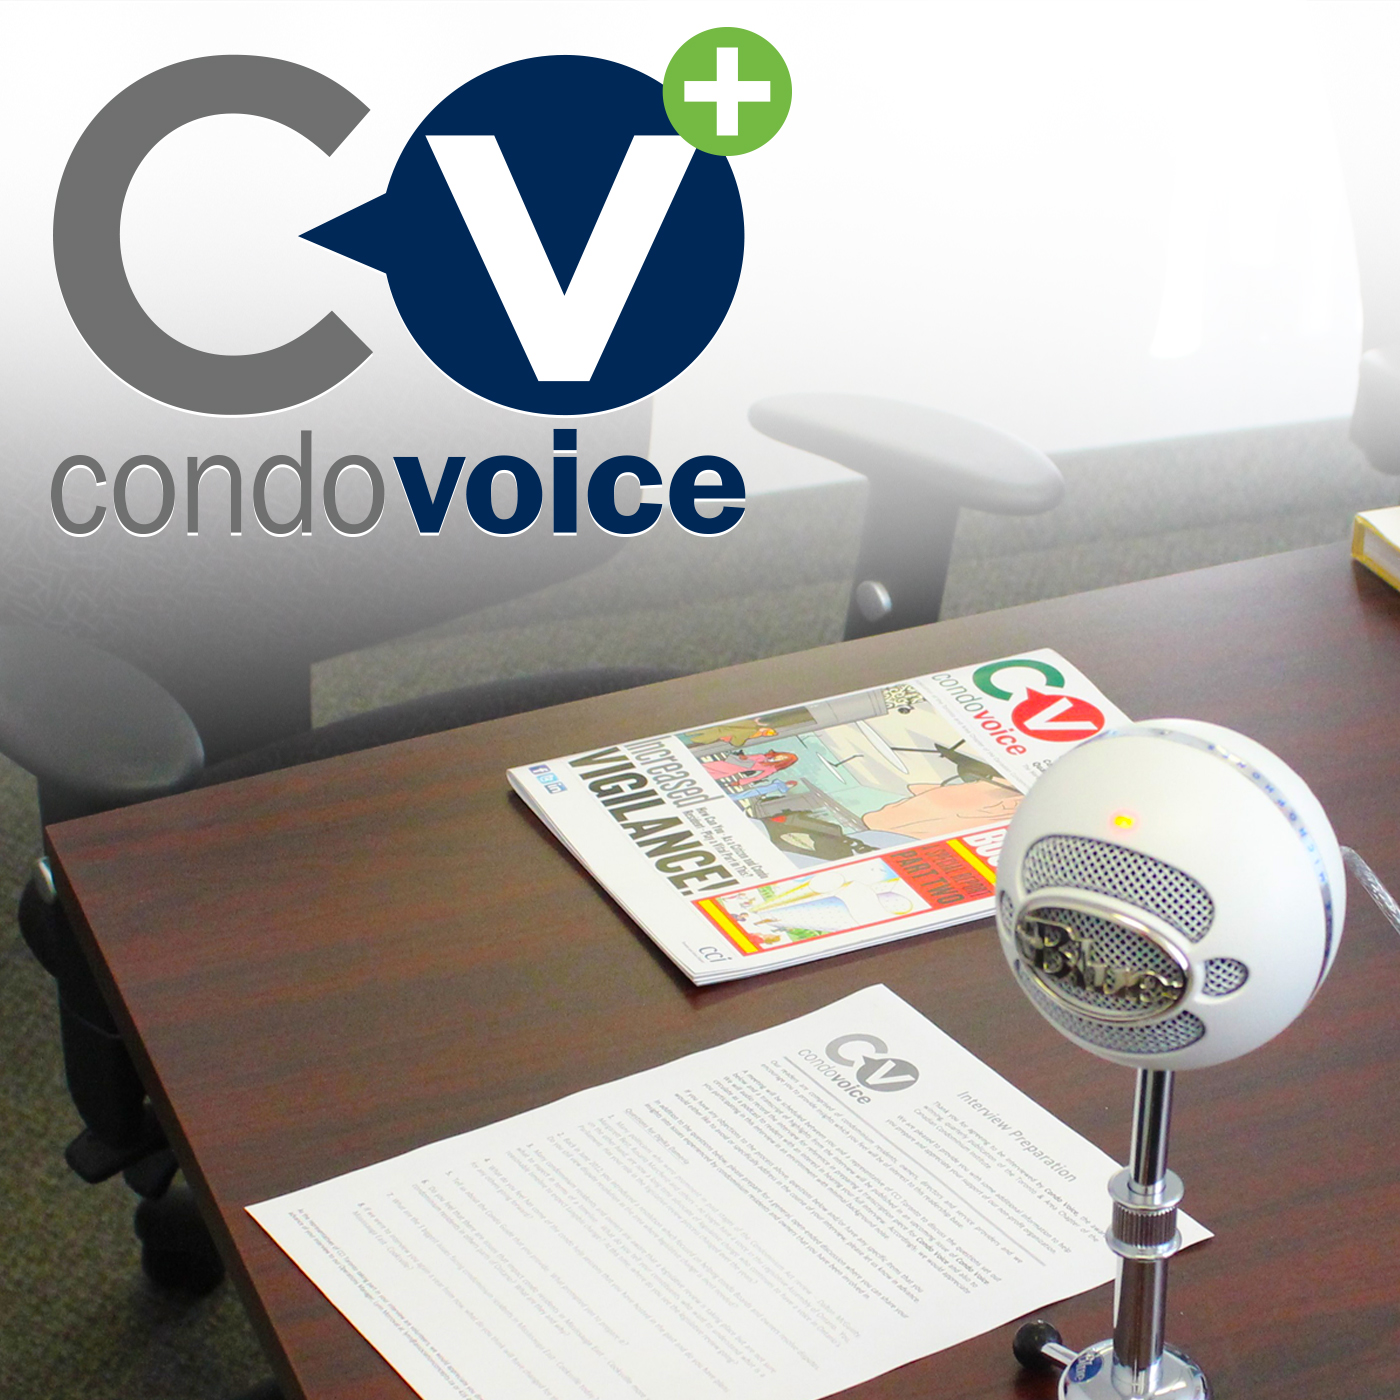 CCI-Toronto - CV+ Podcast, Winter 2015